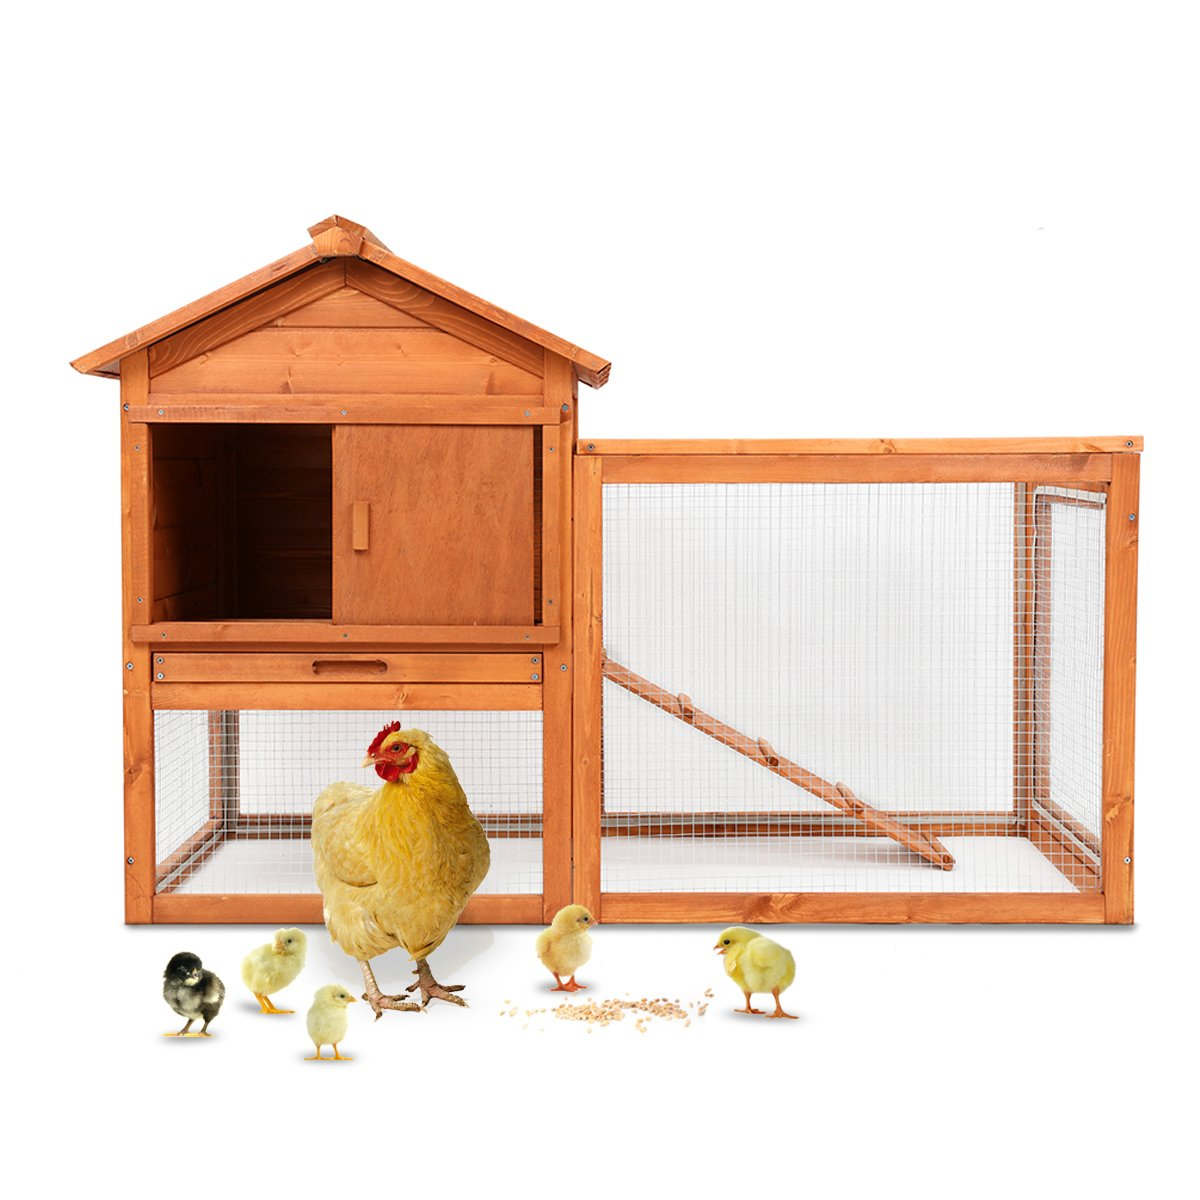 Magshion Wooden Chicken Coop Rabbit Bunny Hutch Pet Cage Wood Small Animal Poultry Cage Run Indoor by Magshion (Image #1)